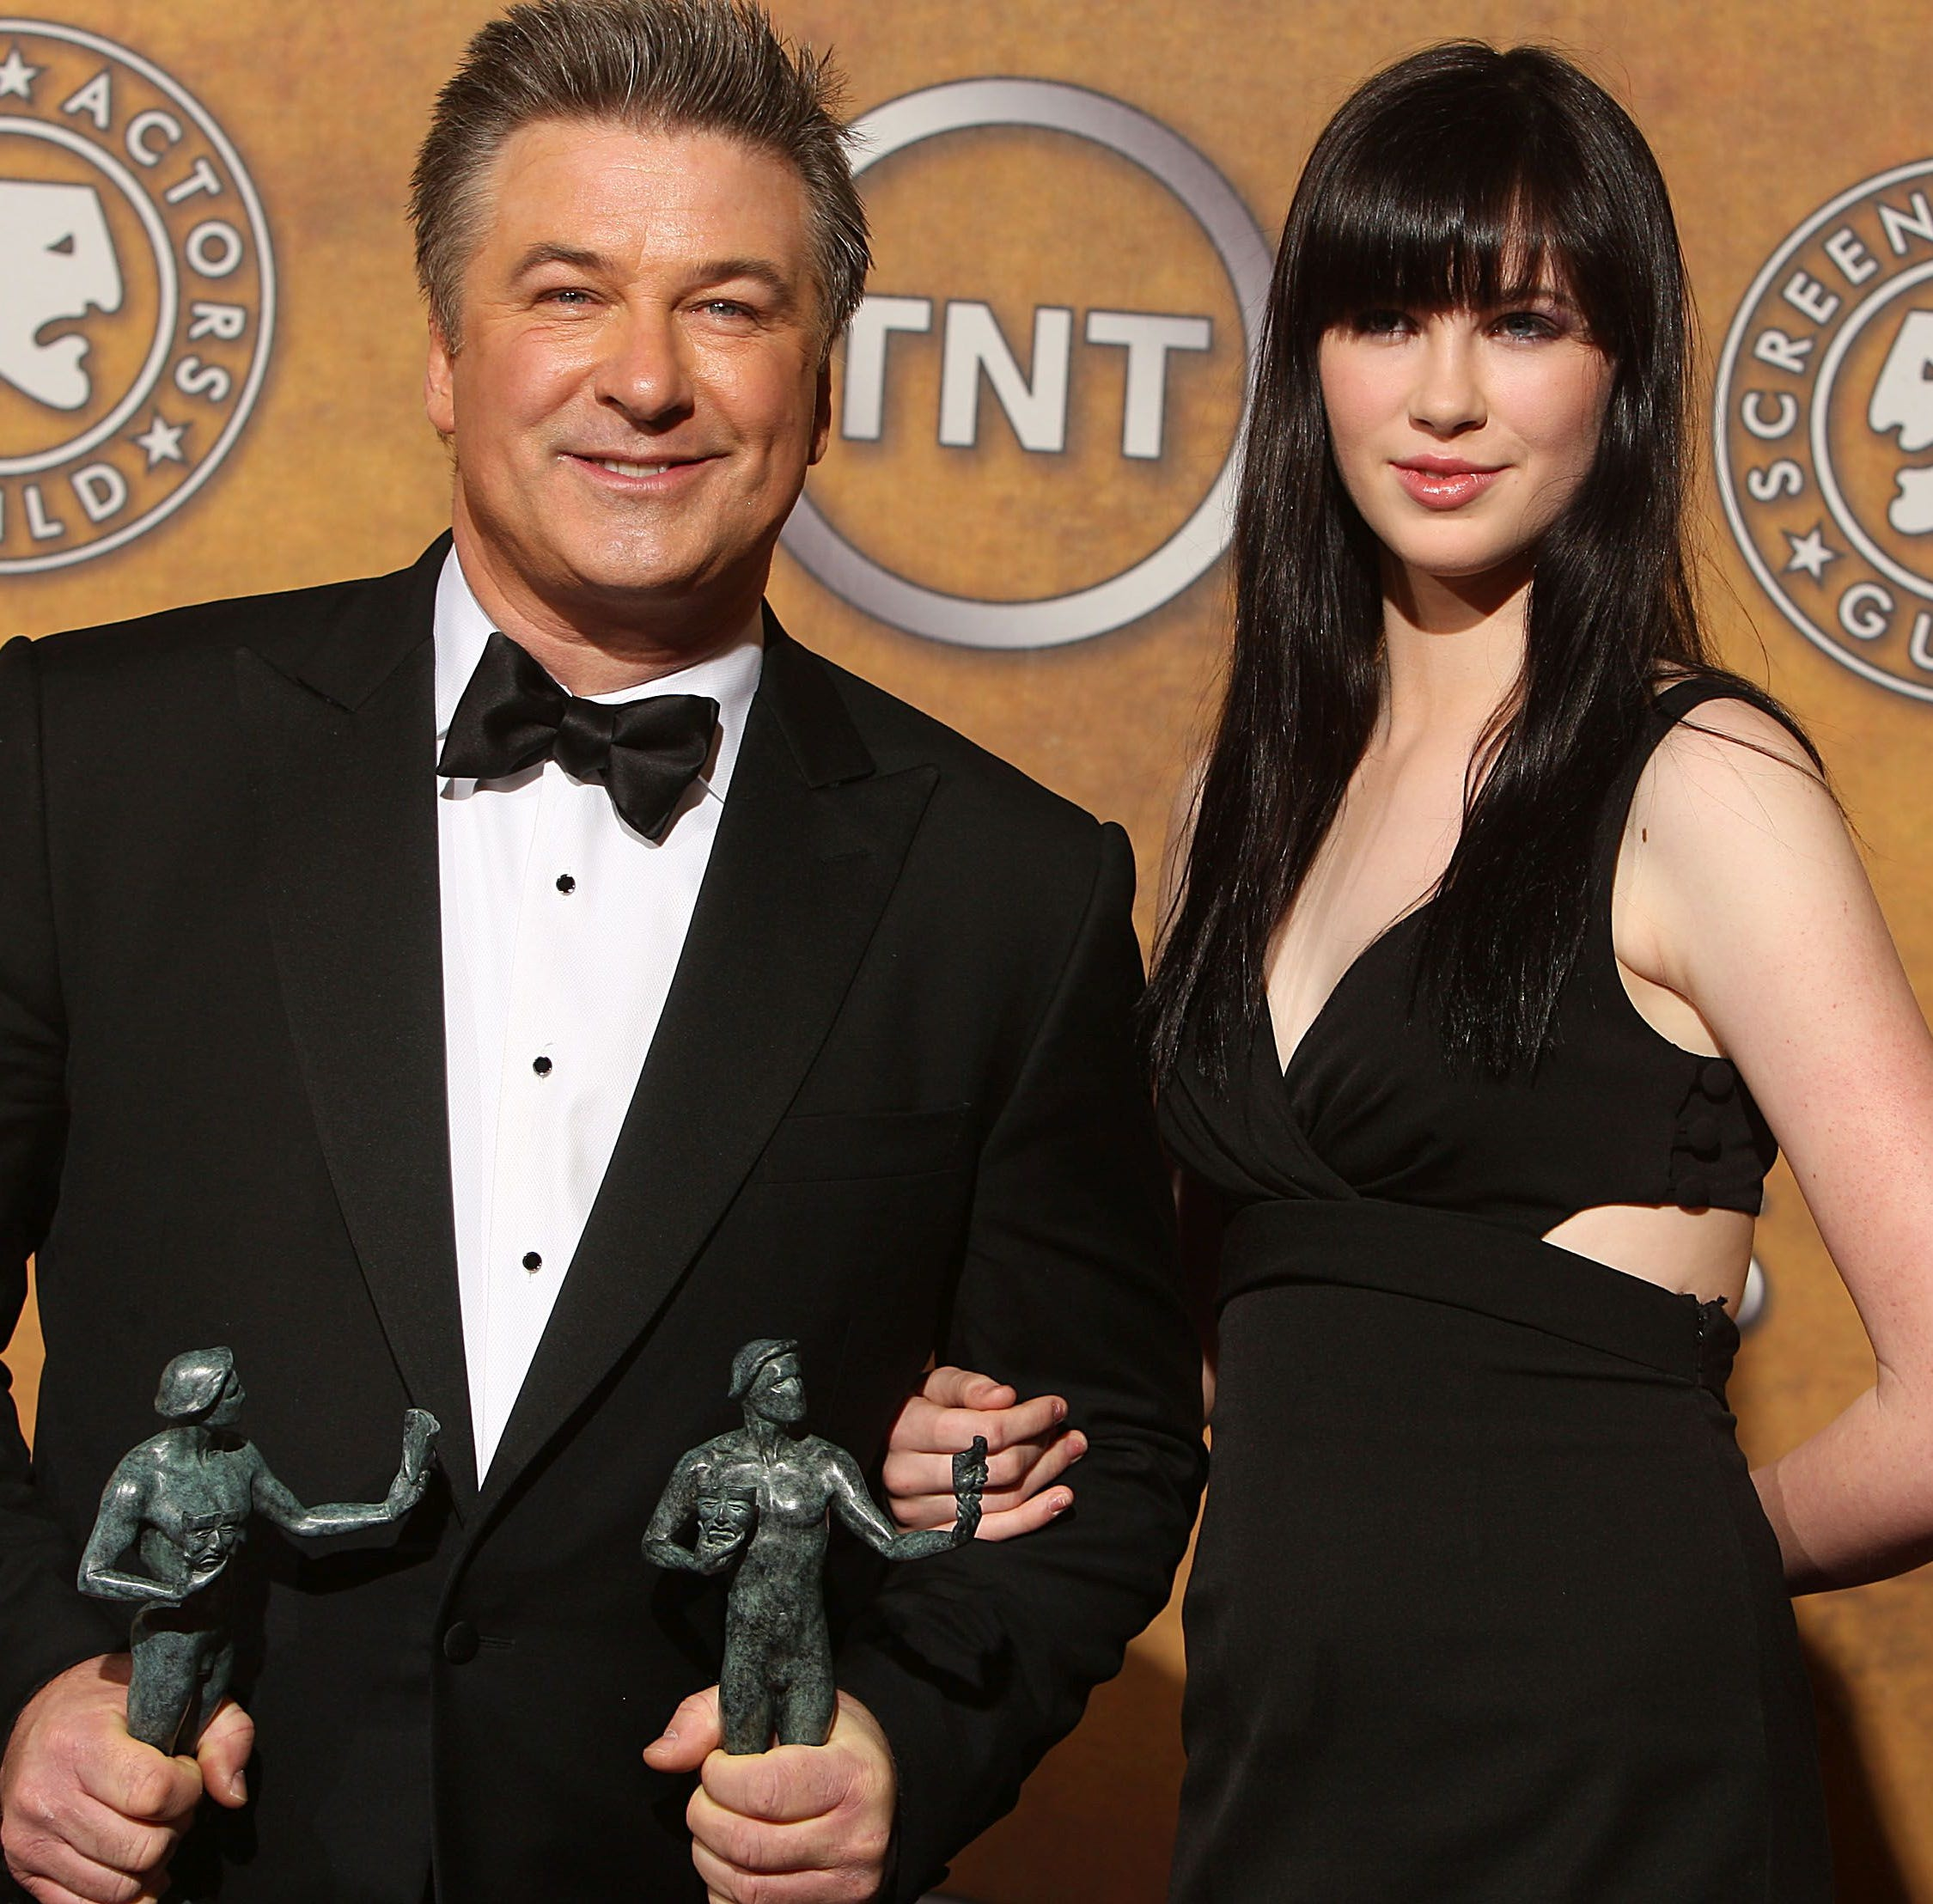 Actor Alec Baldwin and his daughter, Ireland.